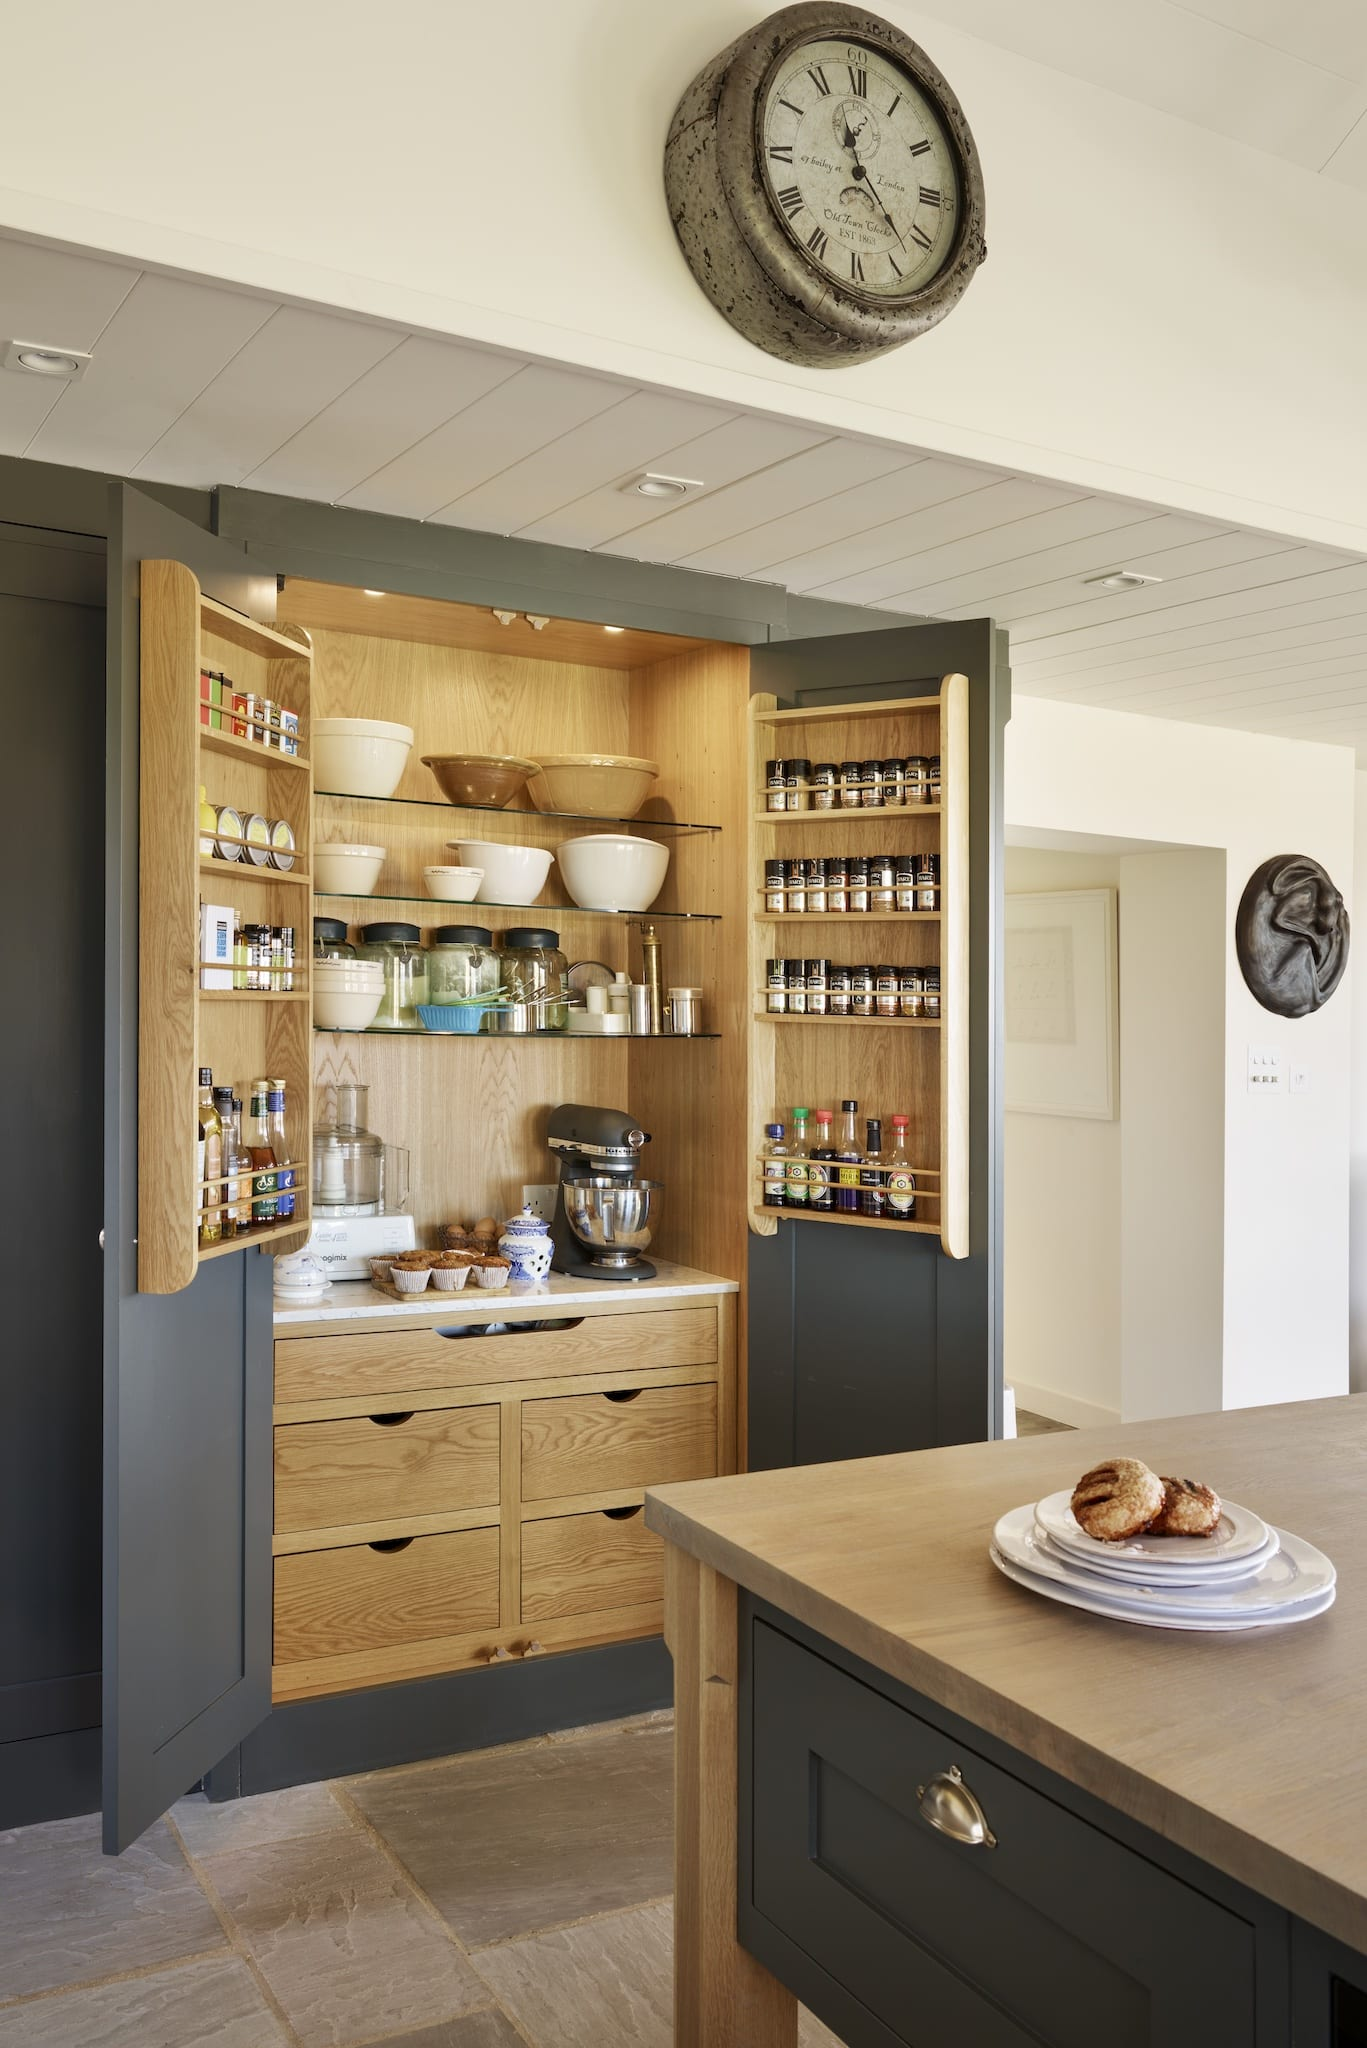 pantry kitchen free standing sink storage the beauty of a or larder next step is defining what sort will work best for you those with enough space dream walk in